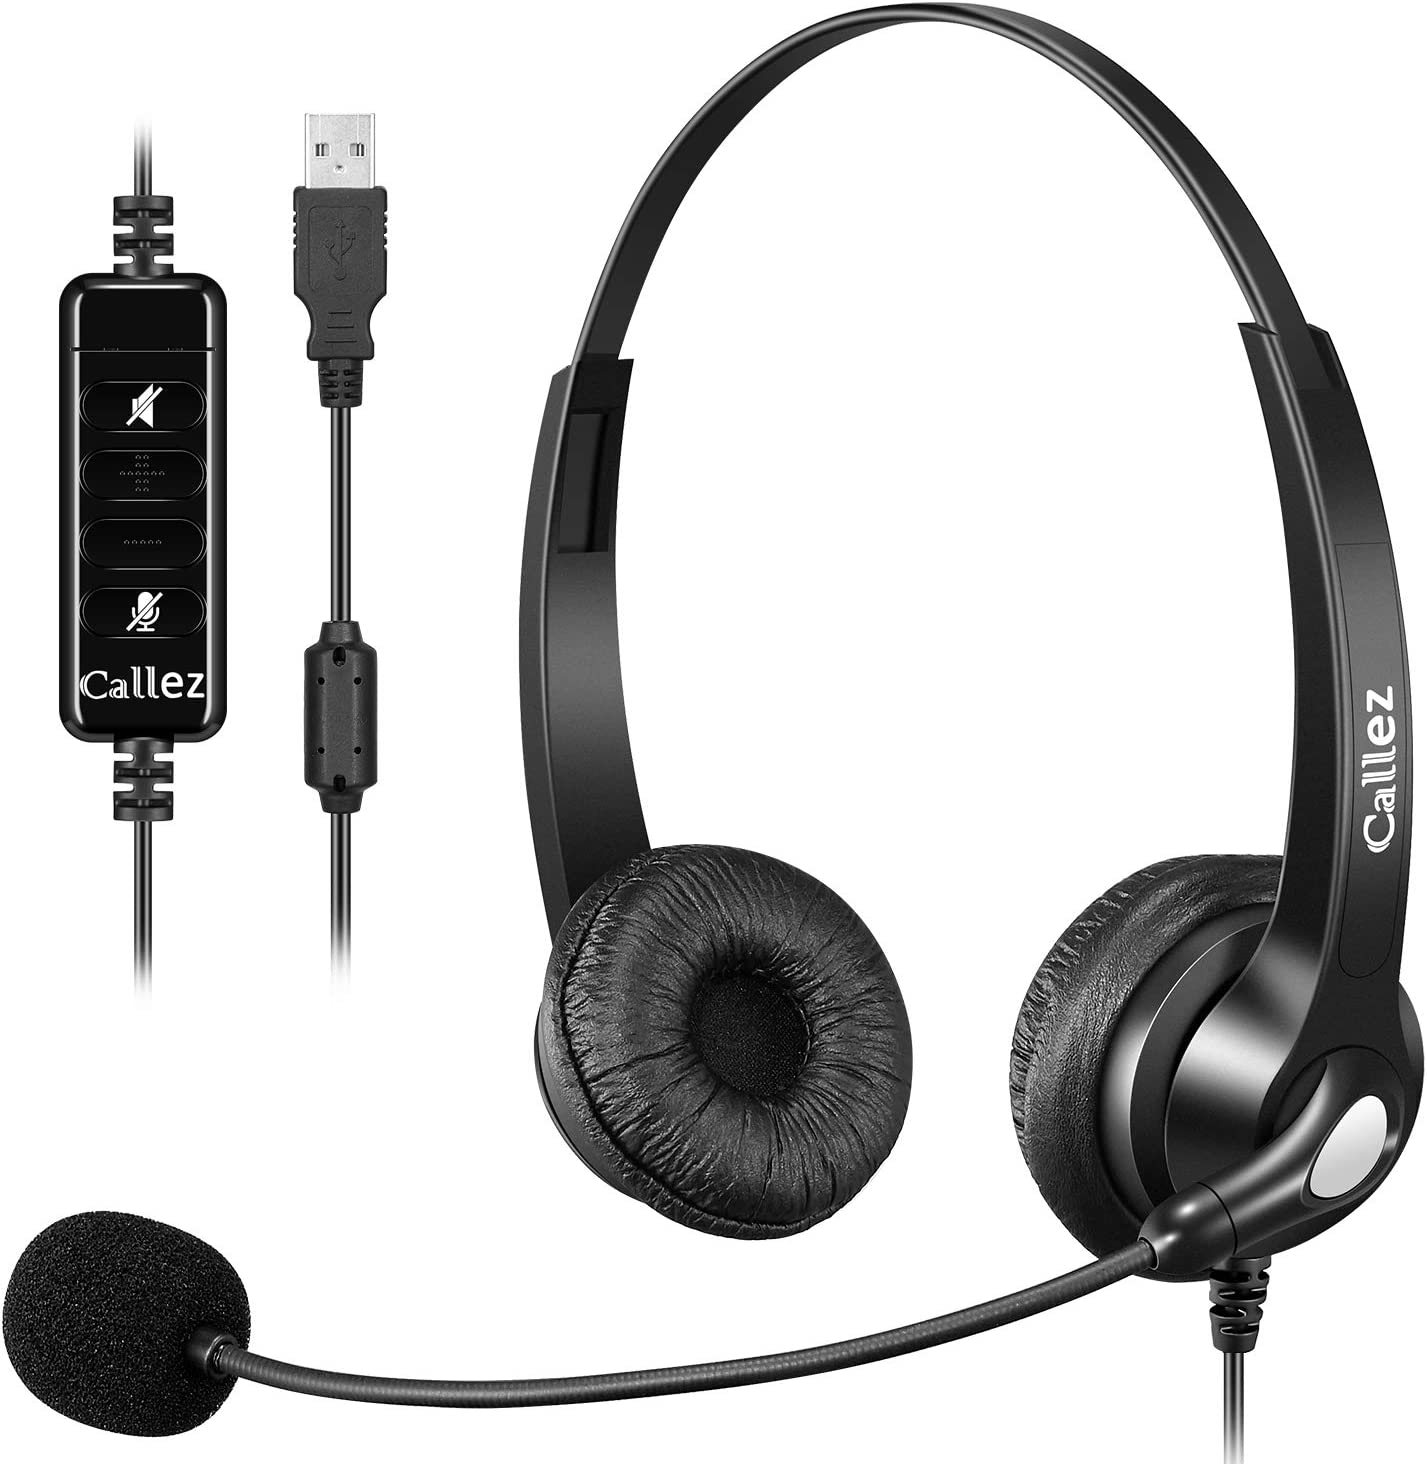 USB Wired PC Headphone Super Light /& Comfort for Business Conference Calls Softphone Conversation Online Teaching Skype etc USB Headset with Microphone Noise Cancelling /& Audio Controls